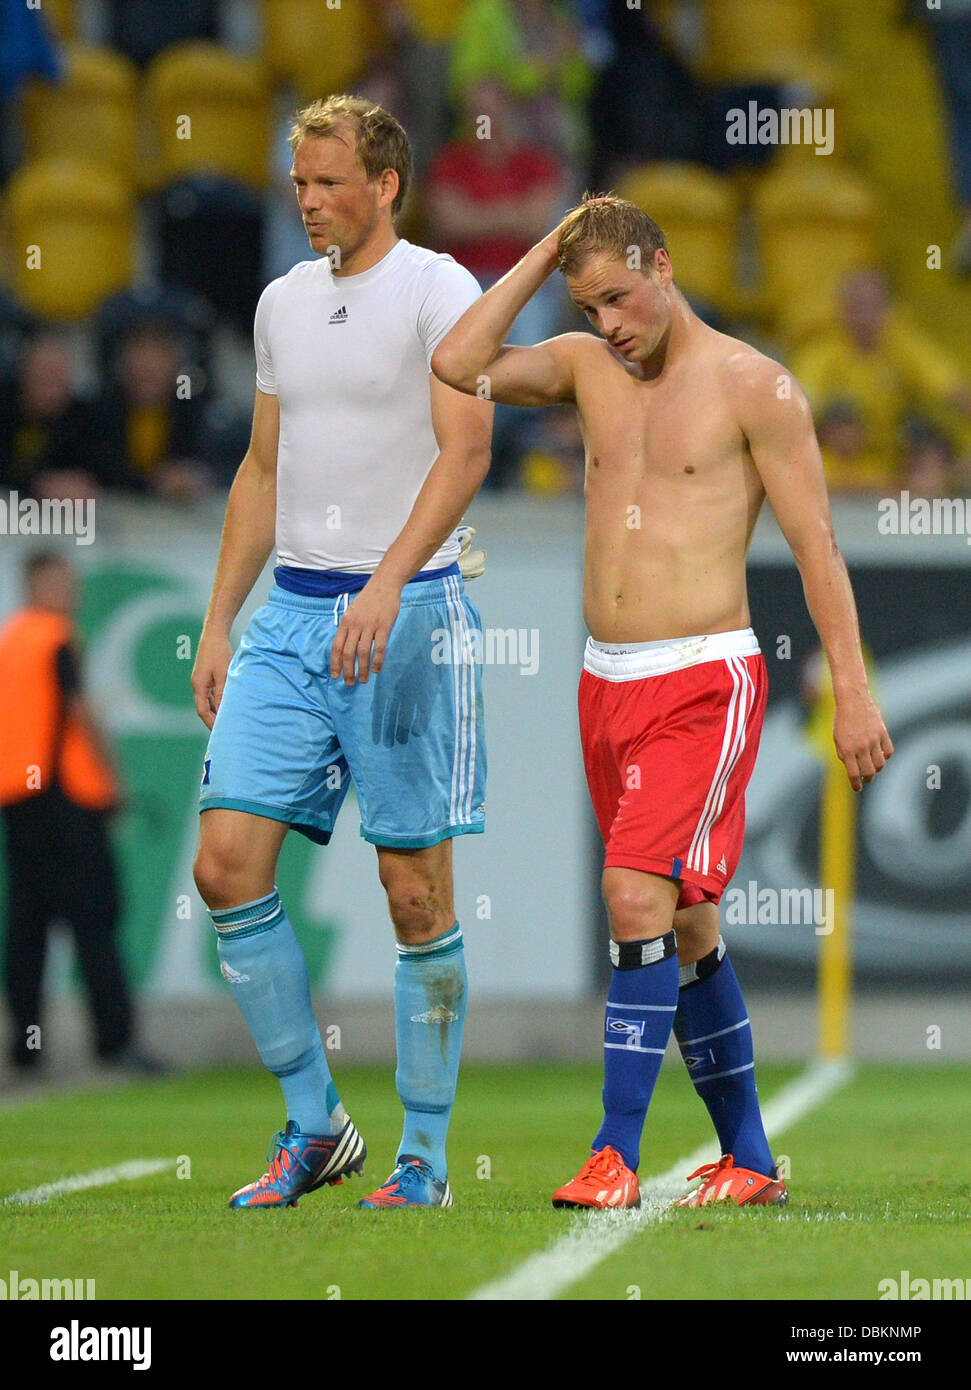 Dresden, Germany. 31st July, 2013. Hamburg's goalkeeper Sven Neuhaus (L) and Maximilian Beister leave the pitch - Stock Image